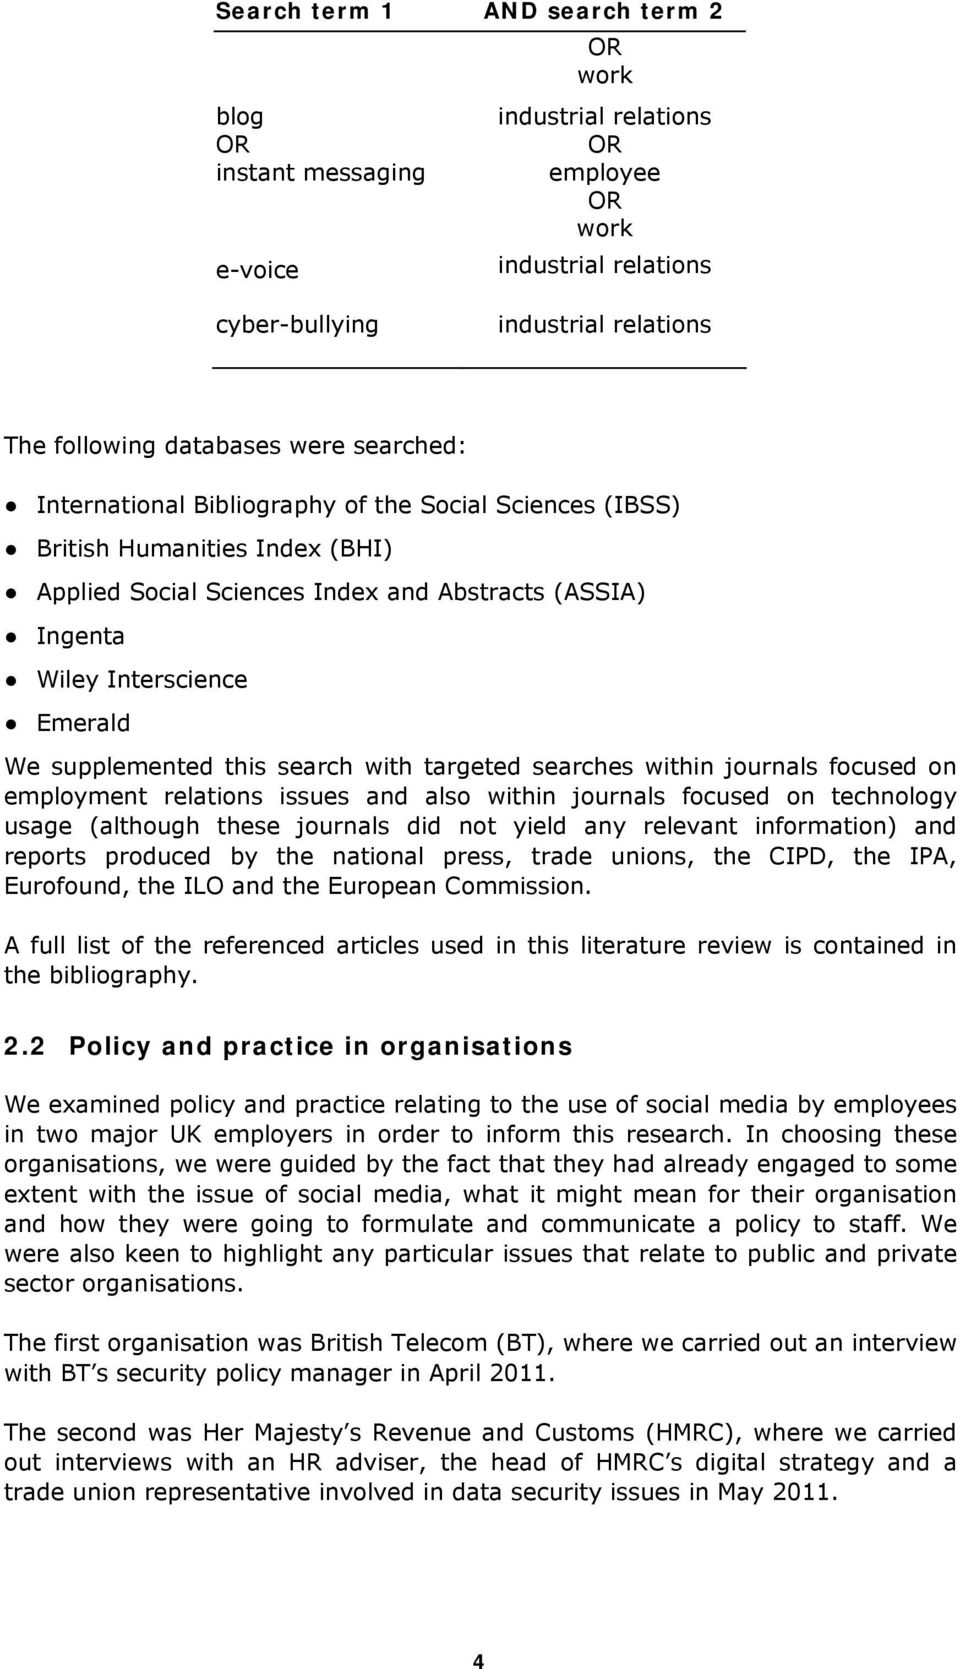 supplemented this search with targeted searches within journals focused on employment relations issues and also within journals focused on technology usage (although these journals did not yield any